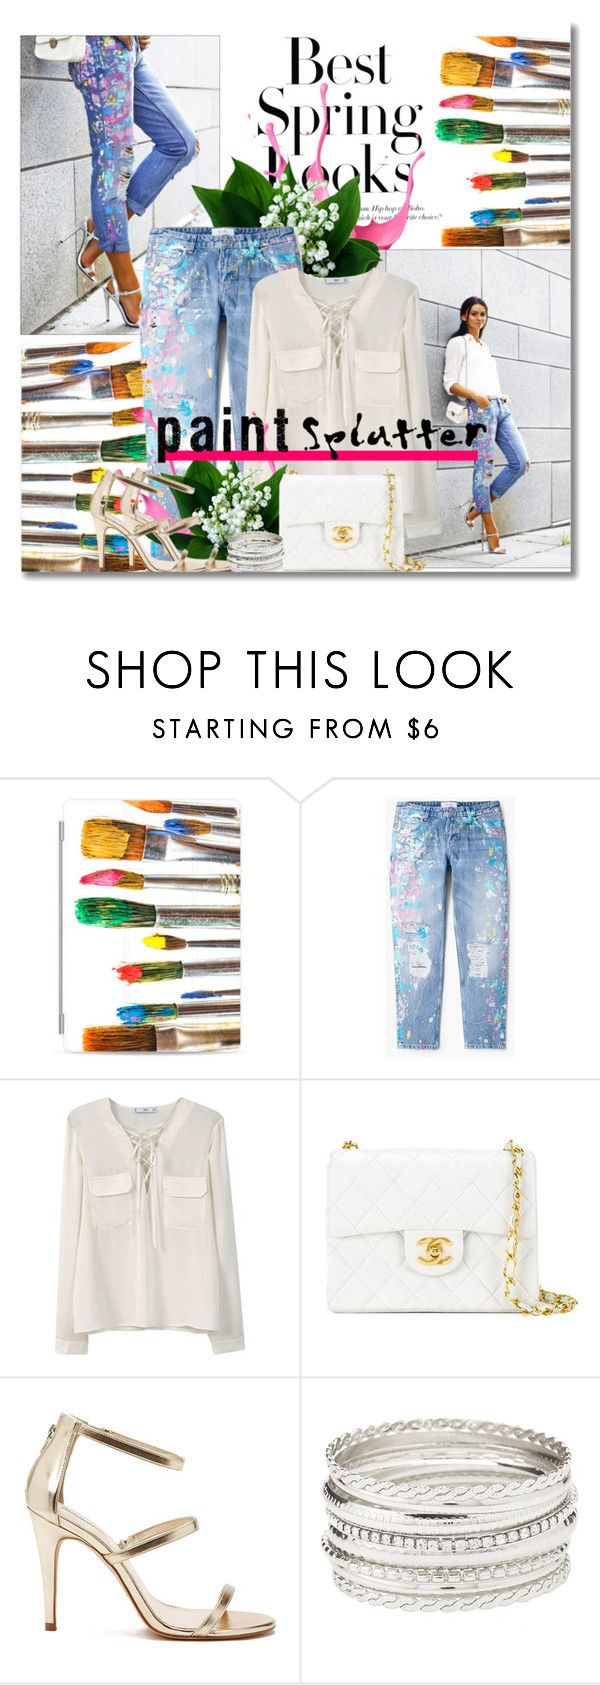 """Make a Splash With Paint Splatters"" by dora04 ❤ liked on Polyvore featuring H&M, Casetify, MANGO, Chanel, Forever 21, Charlotte Russe and paintsplatter"